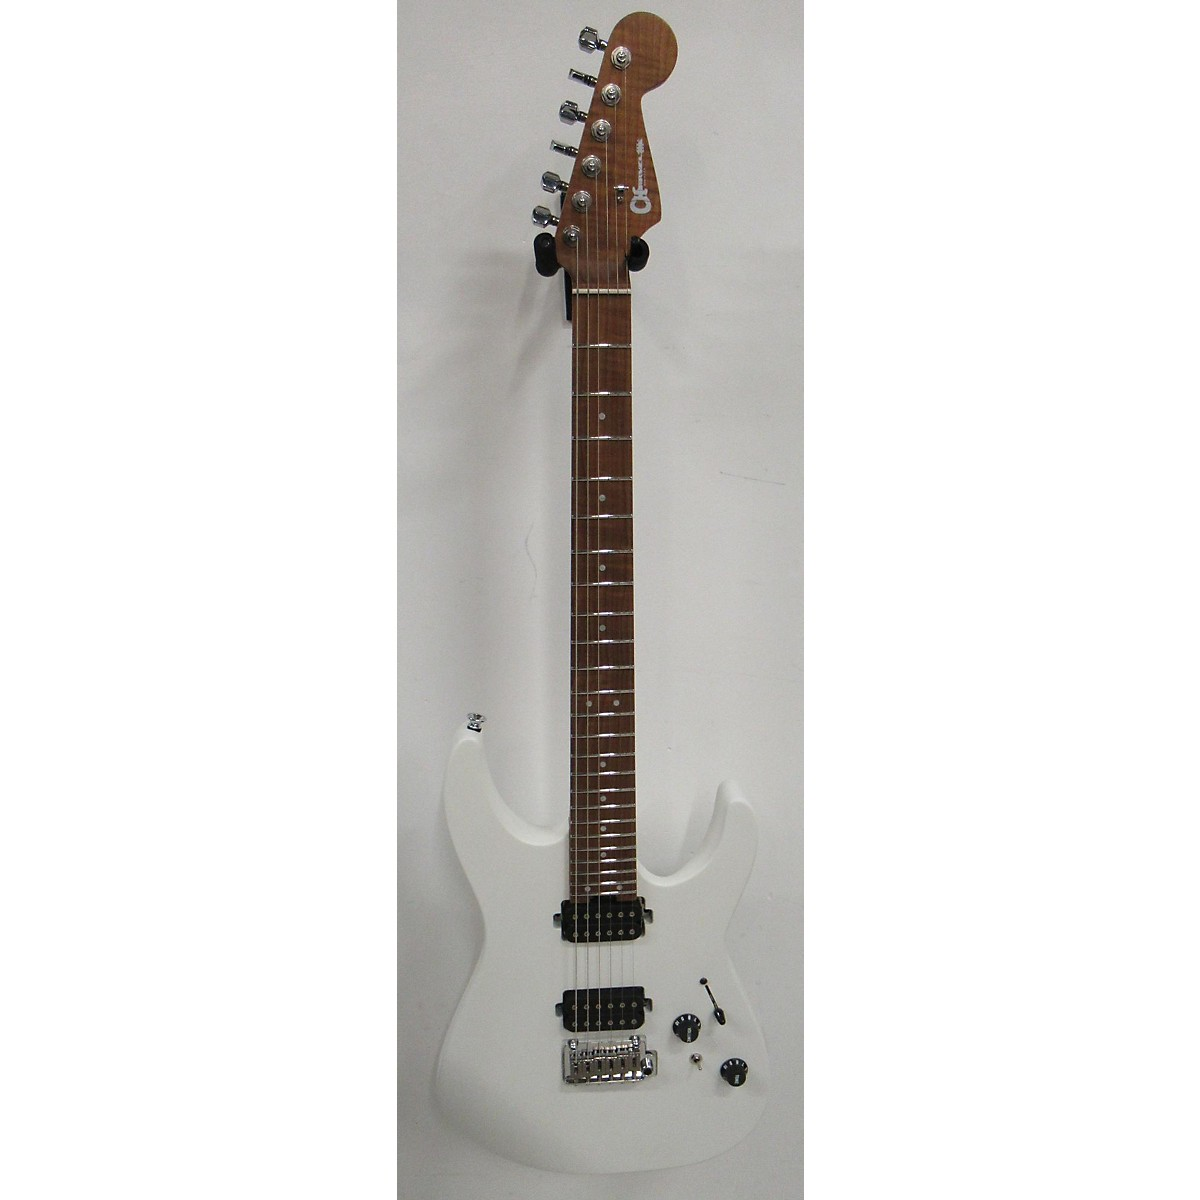 Charvel 2019 DK24 HH Solid Body Electric Guitar